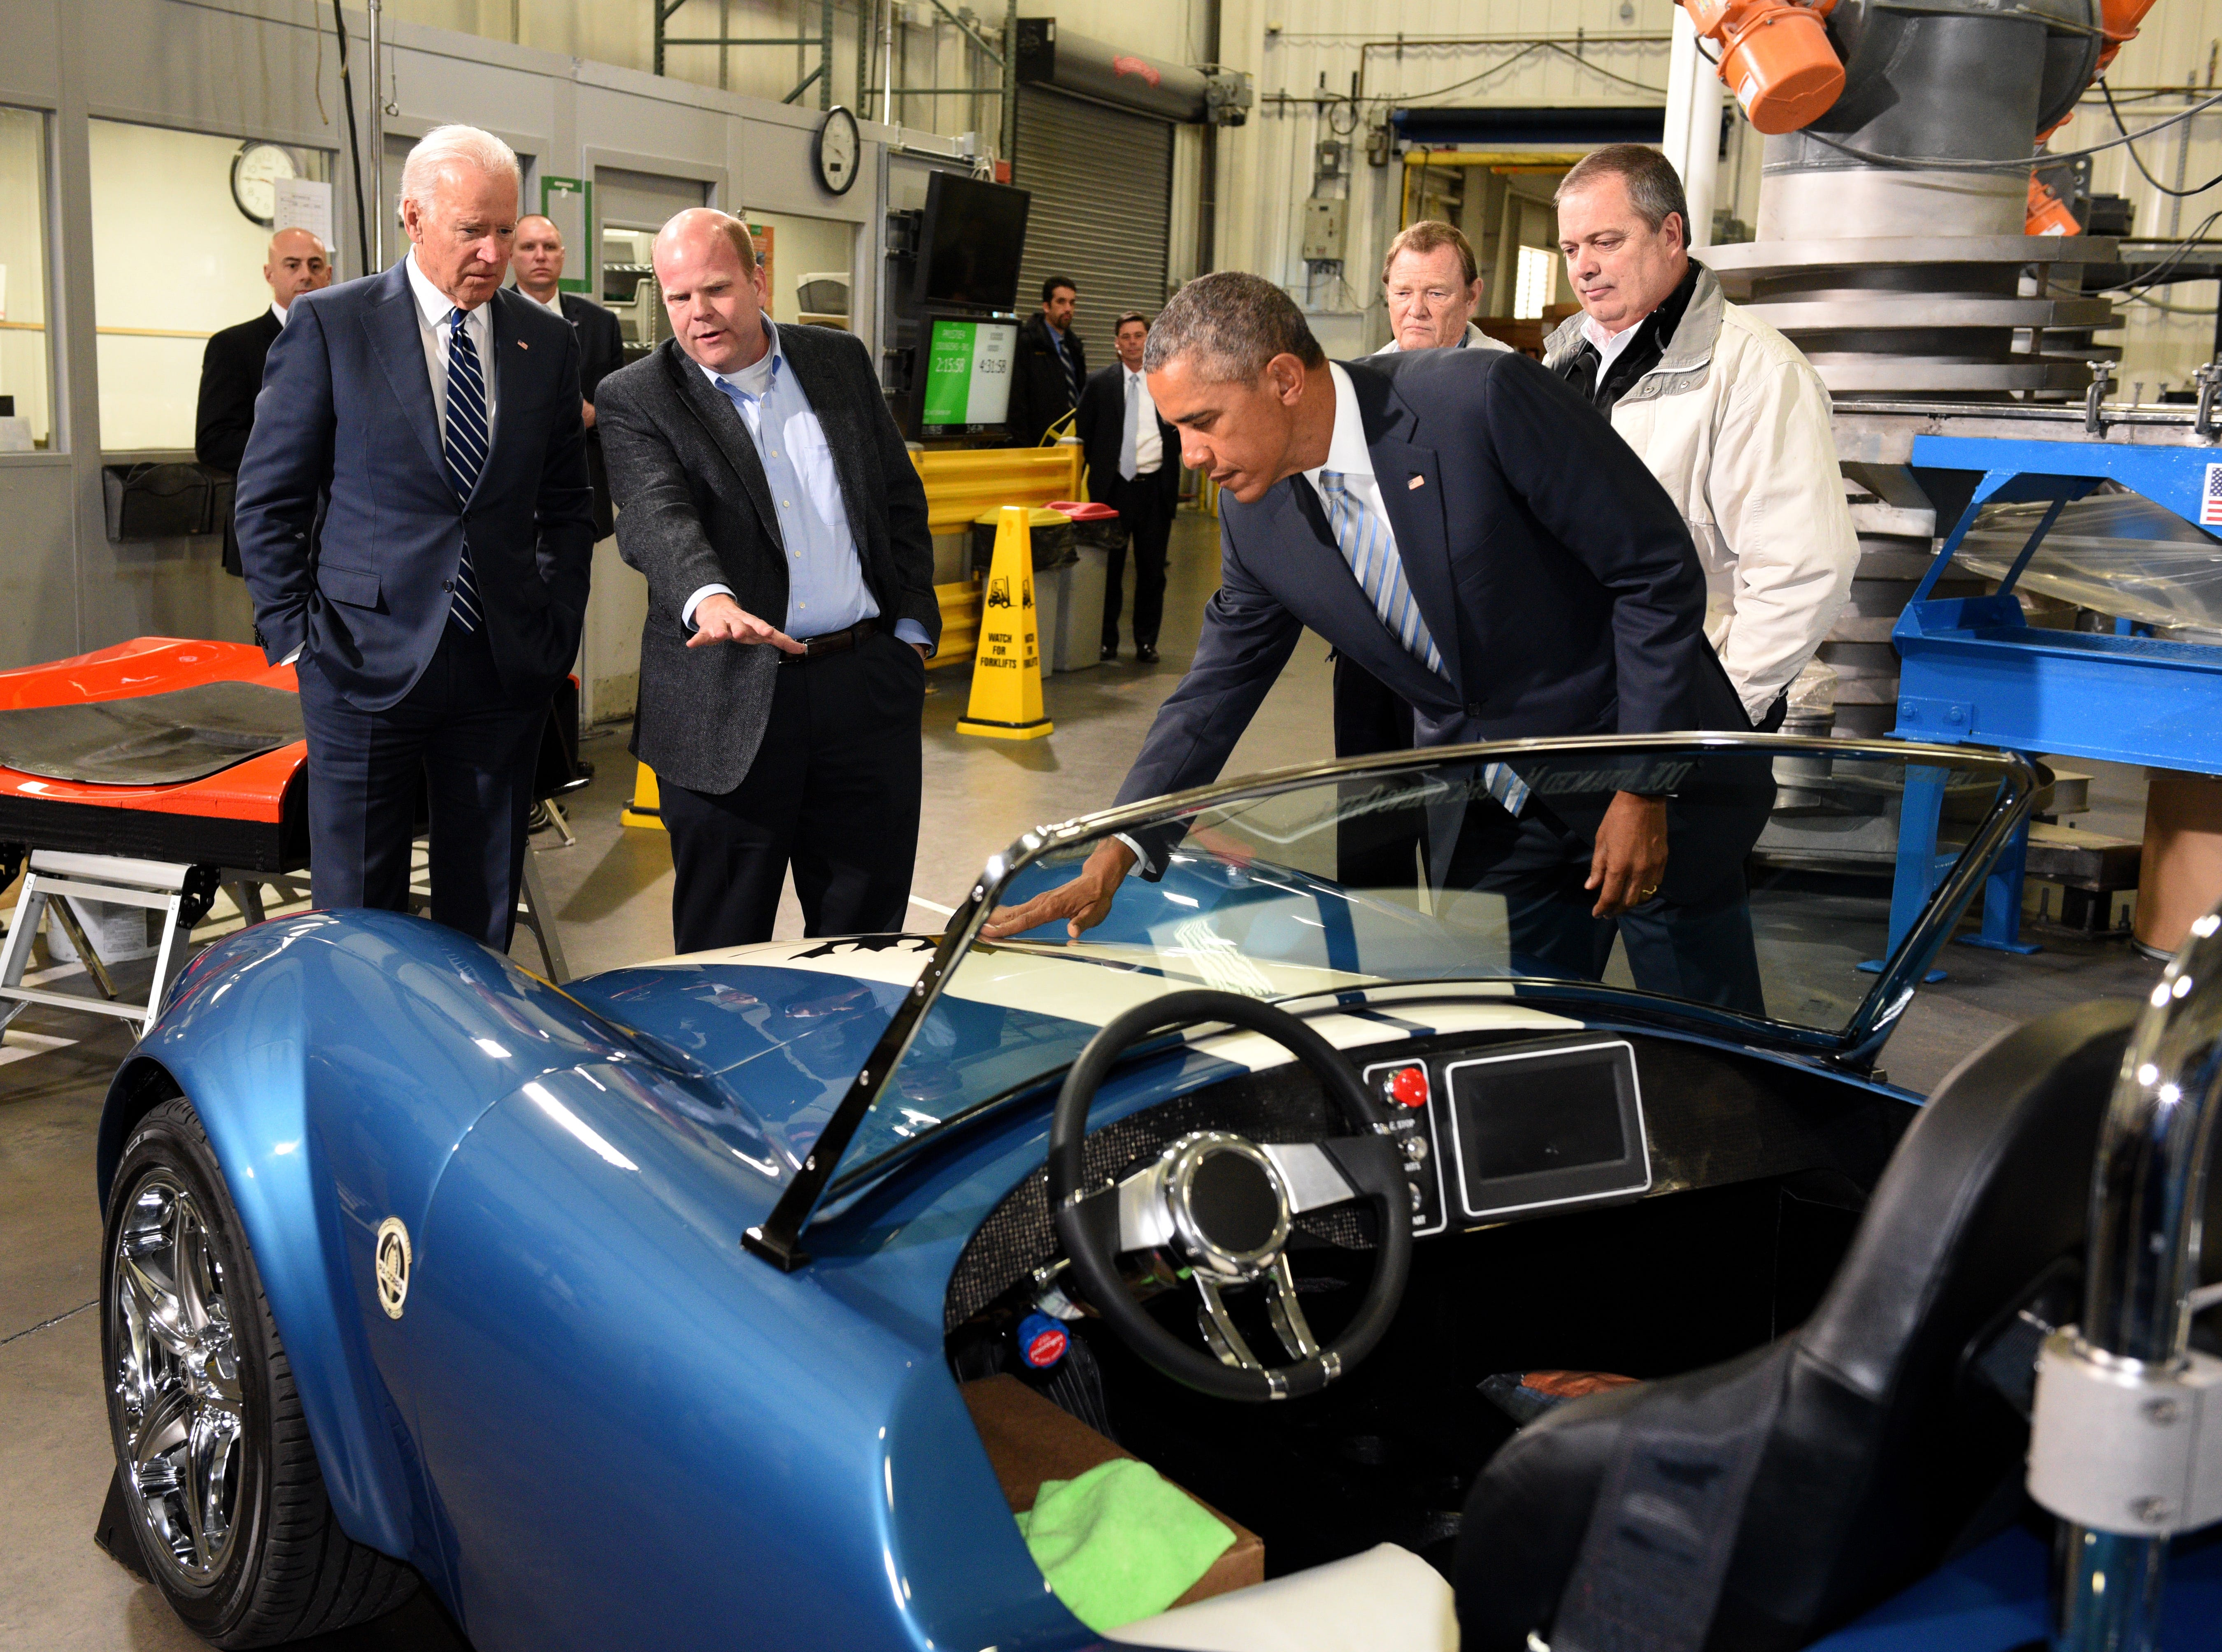 Lonnie Love of Oak Ridge National Laboratory, second from left, explains a 3D-printed Shelby Cobra to Vice President Joe Biden, left, and President Barack Obama at Techmer PM Friday, Jan. 9, 2015, in Clinton. At right is Tom Drye, managing Director at Techmer Engineered Solutions. (MICHAEL PATRICK/NEWS SENTINEL)